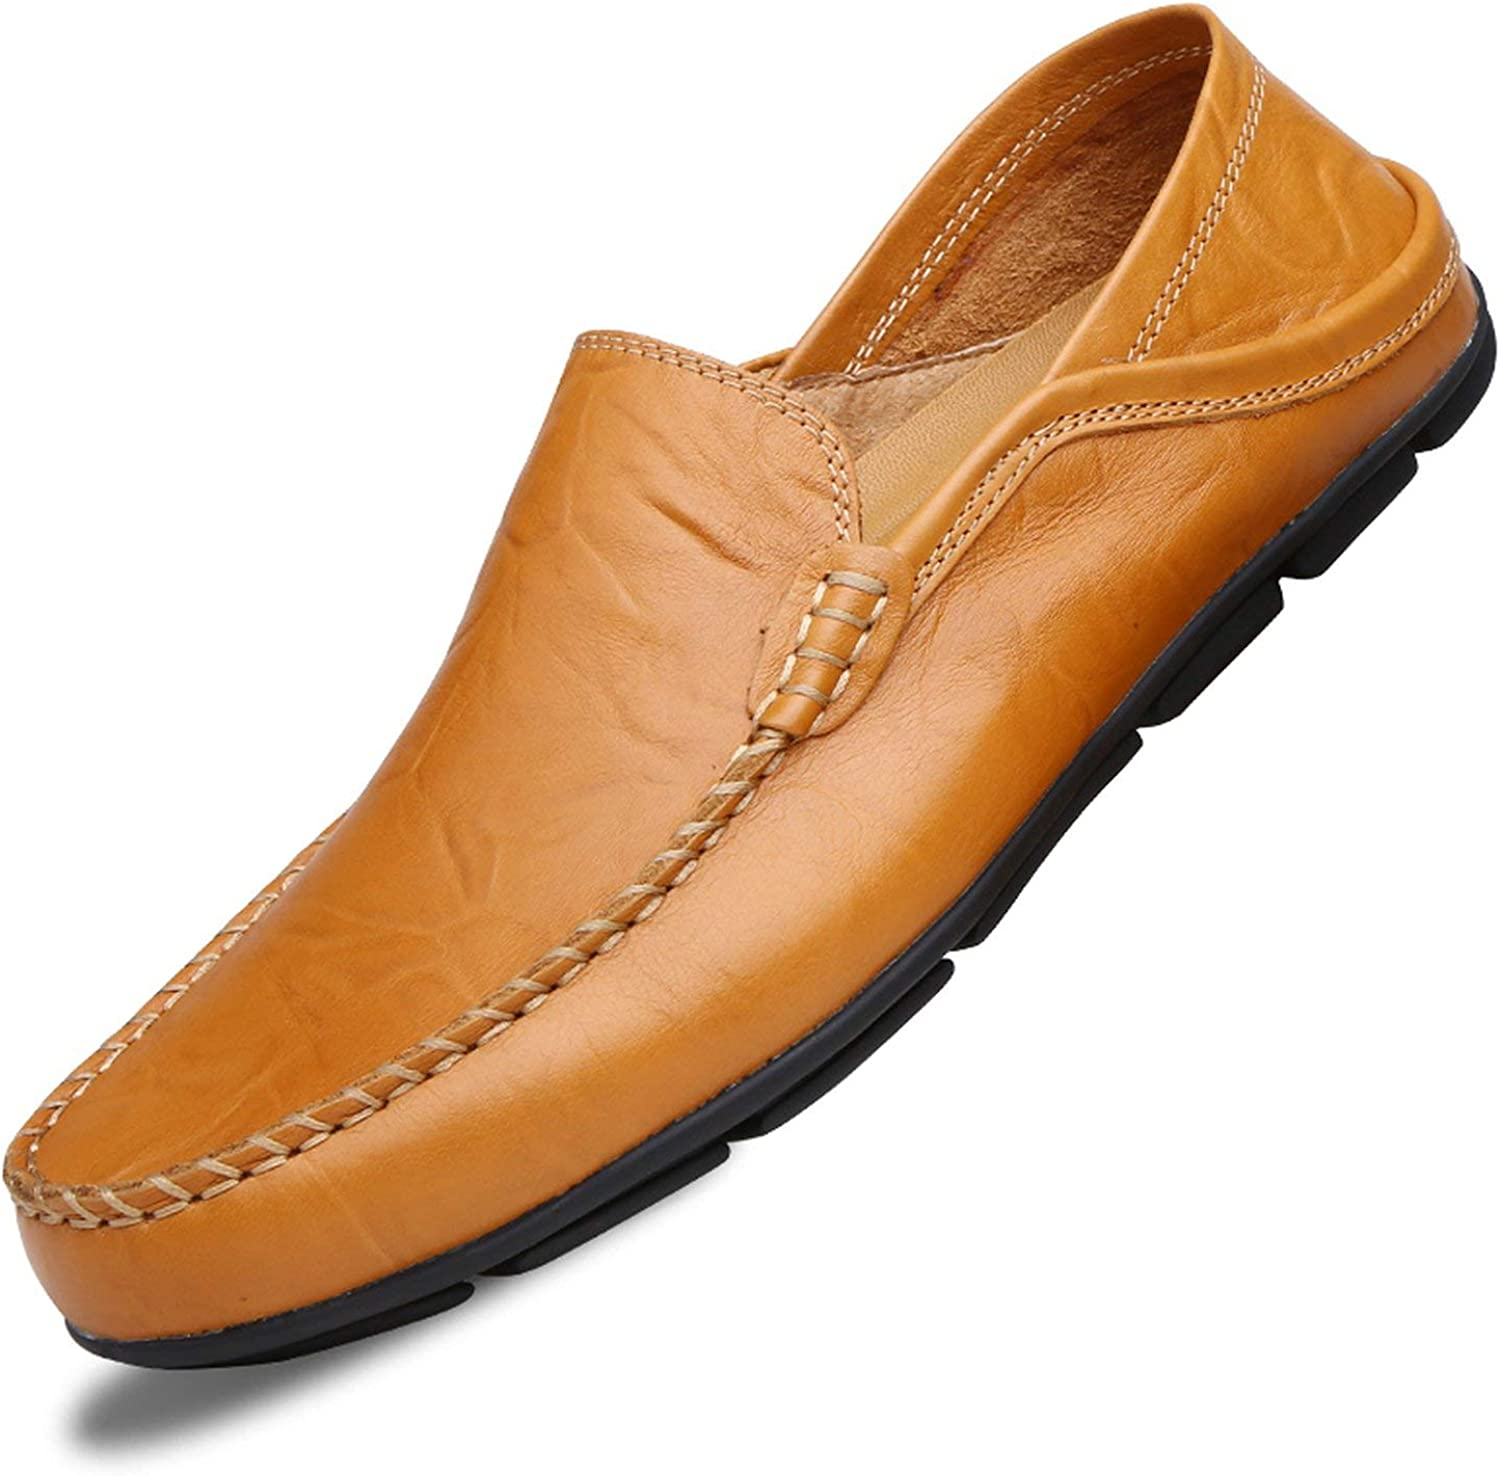 ALWAYS ME Men shoes Genuine Leather Comfortable shoes Sport Footwear shoes Flats Slip On Lazy shoes